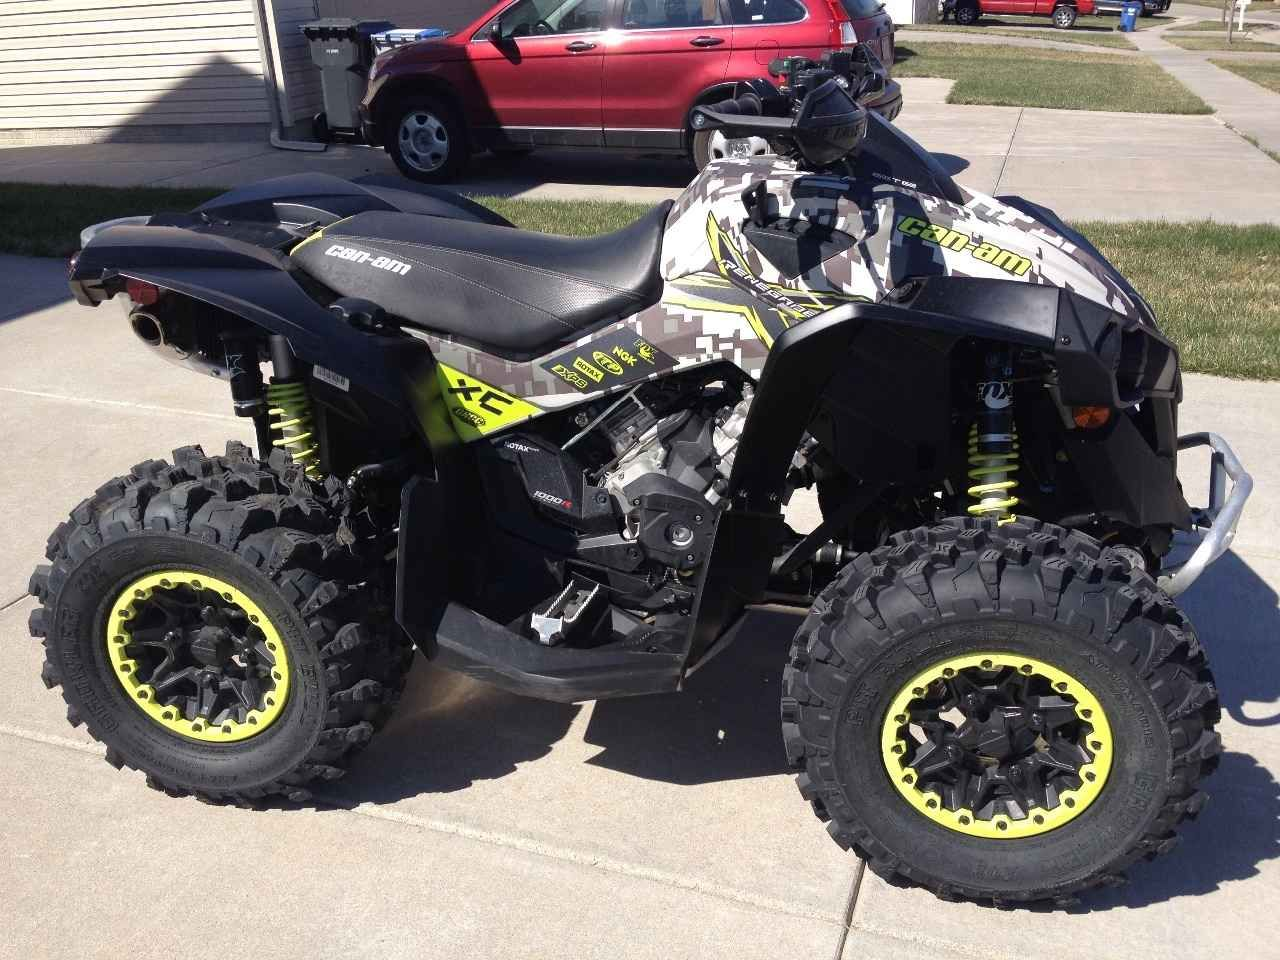 Used 2016 can am renegade x xc 1000 atvs for sale in nebraska 2016 can am renegade 1000r x xc with 13 hours like new has yoshimura can am exhaust